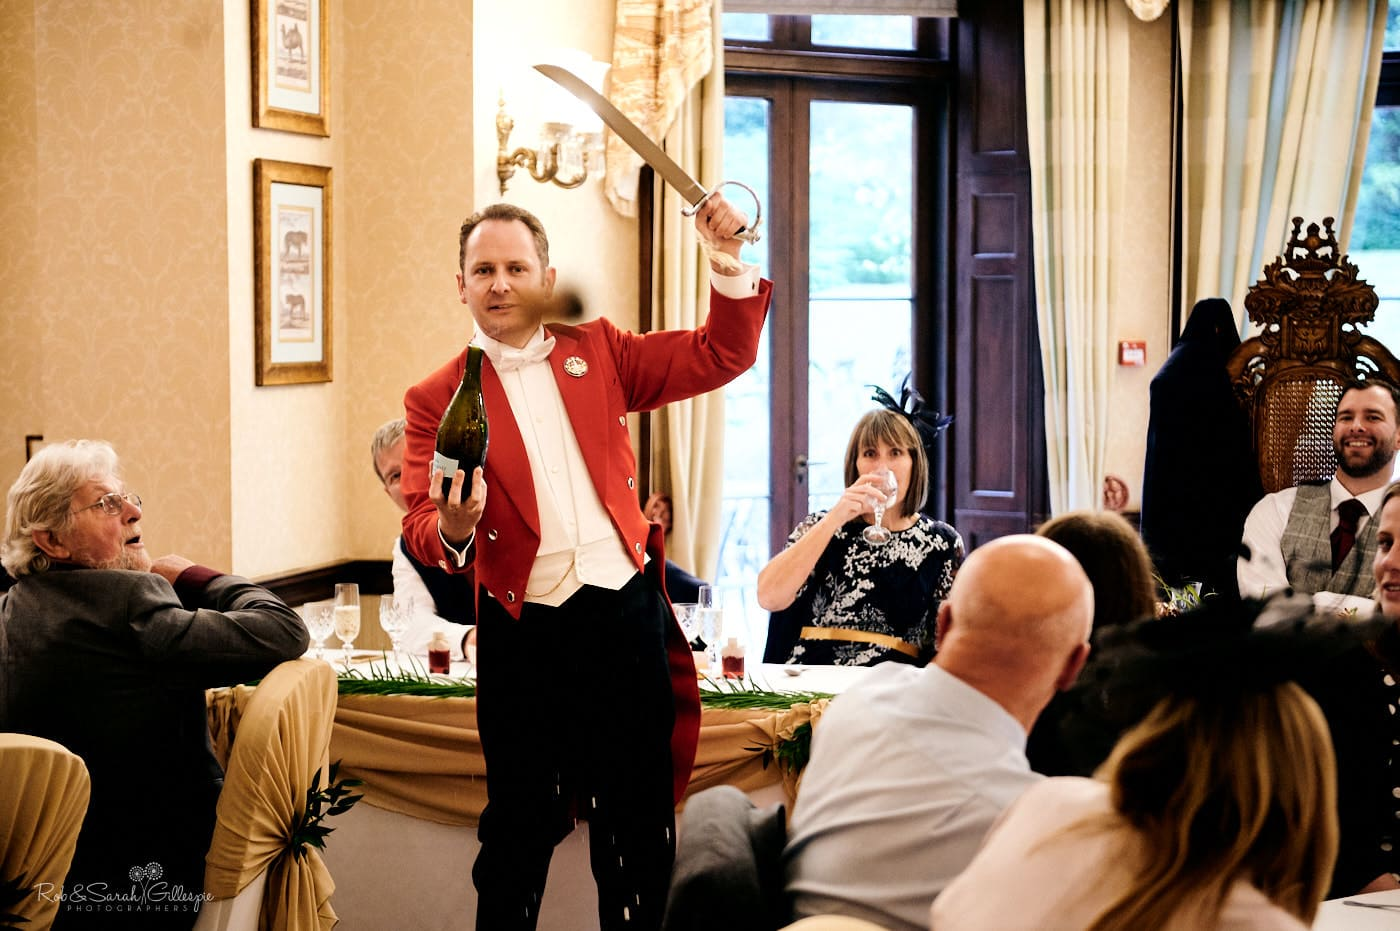 Wedding master of ceremonies performs sabrage with sword and champagne bottle